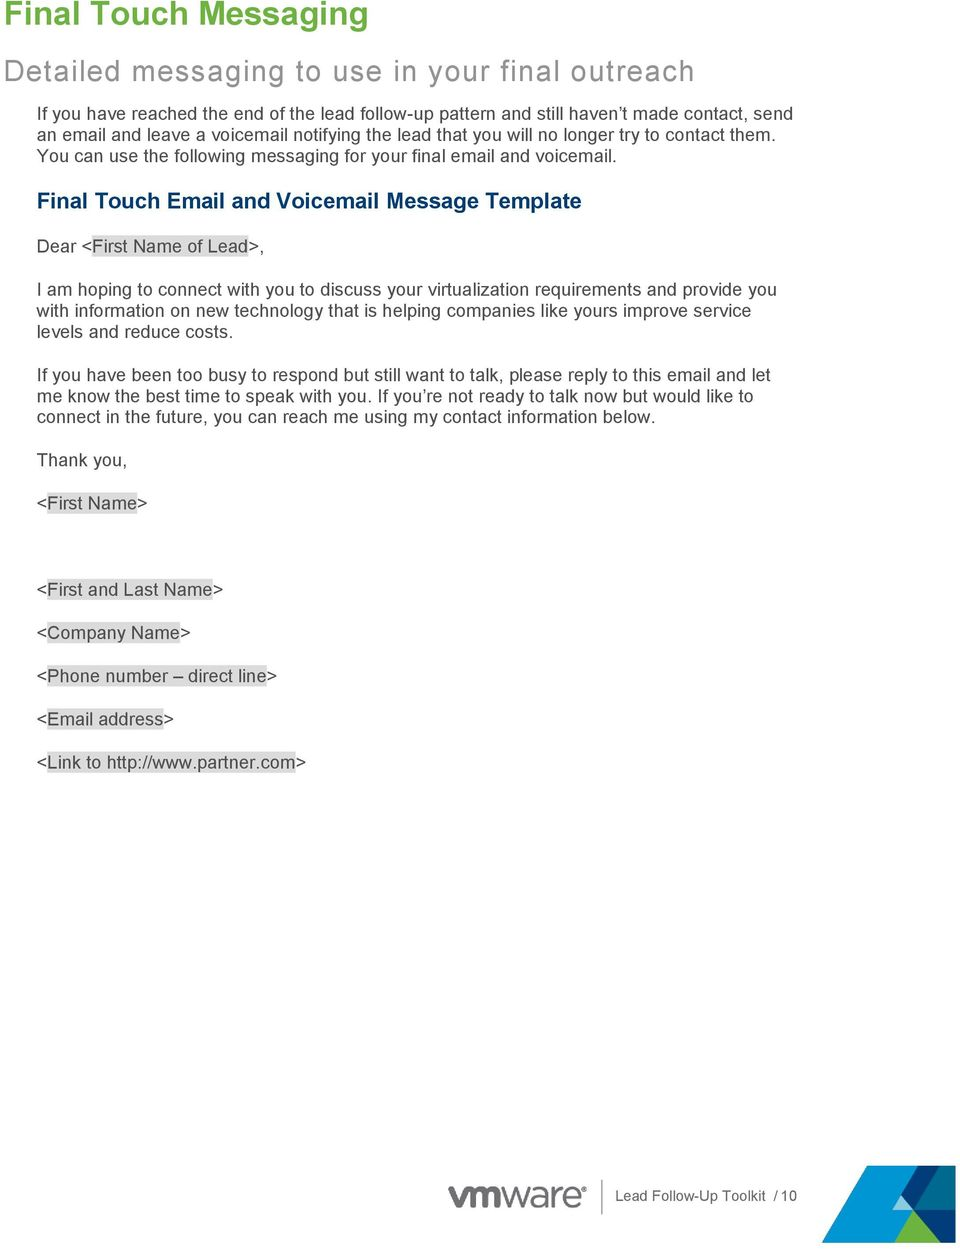 Final Touch Email and Voicemail Message Template Dear <First Name of Lead>, I am hoping to connect with you to discuss your virtualization requirements and provide you with information on new